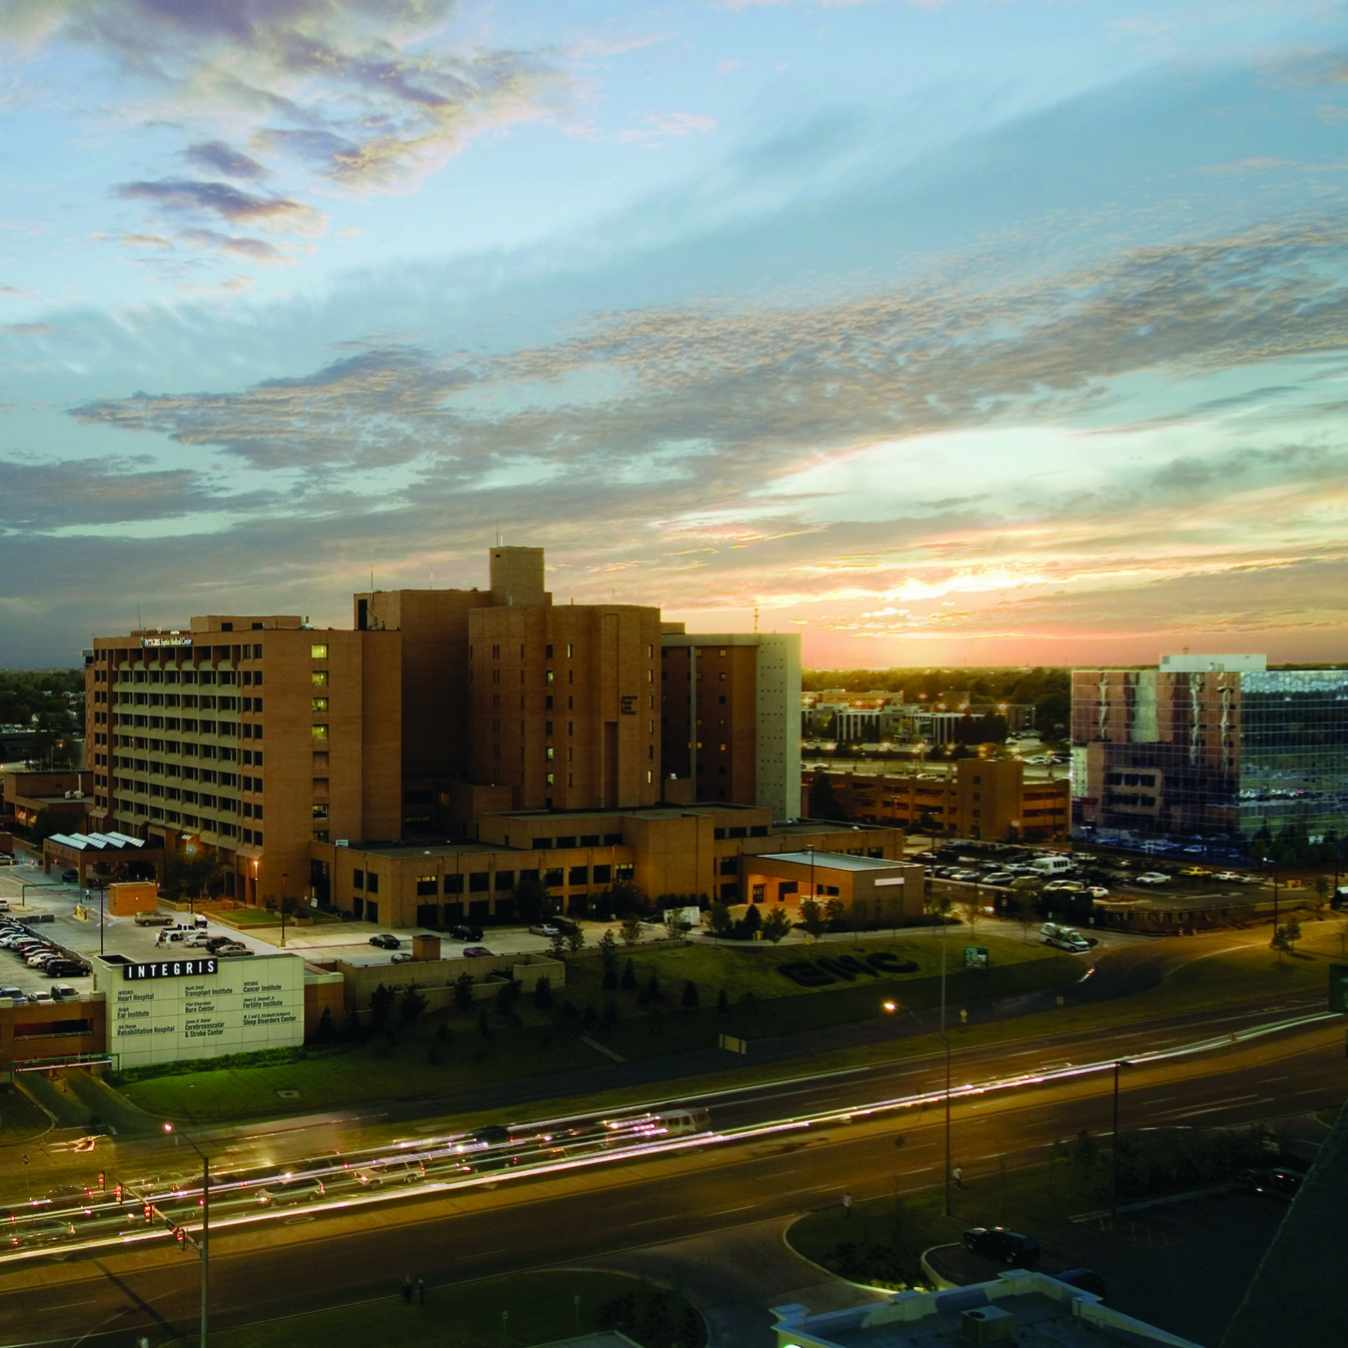 Beauty Shot of the INTEGRIS Baptist Medical Center